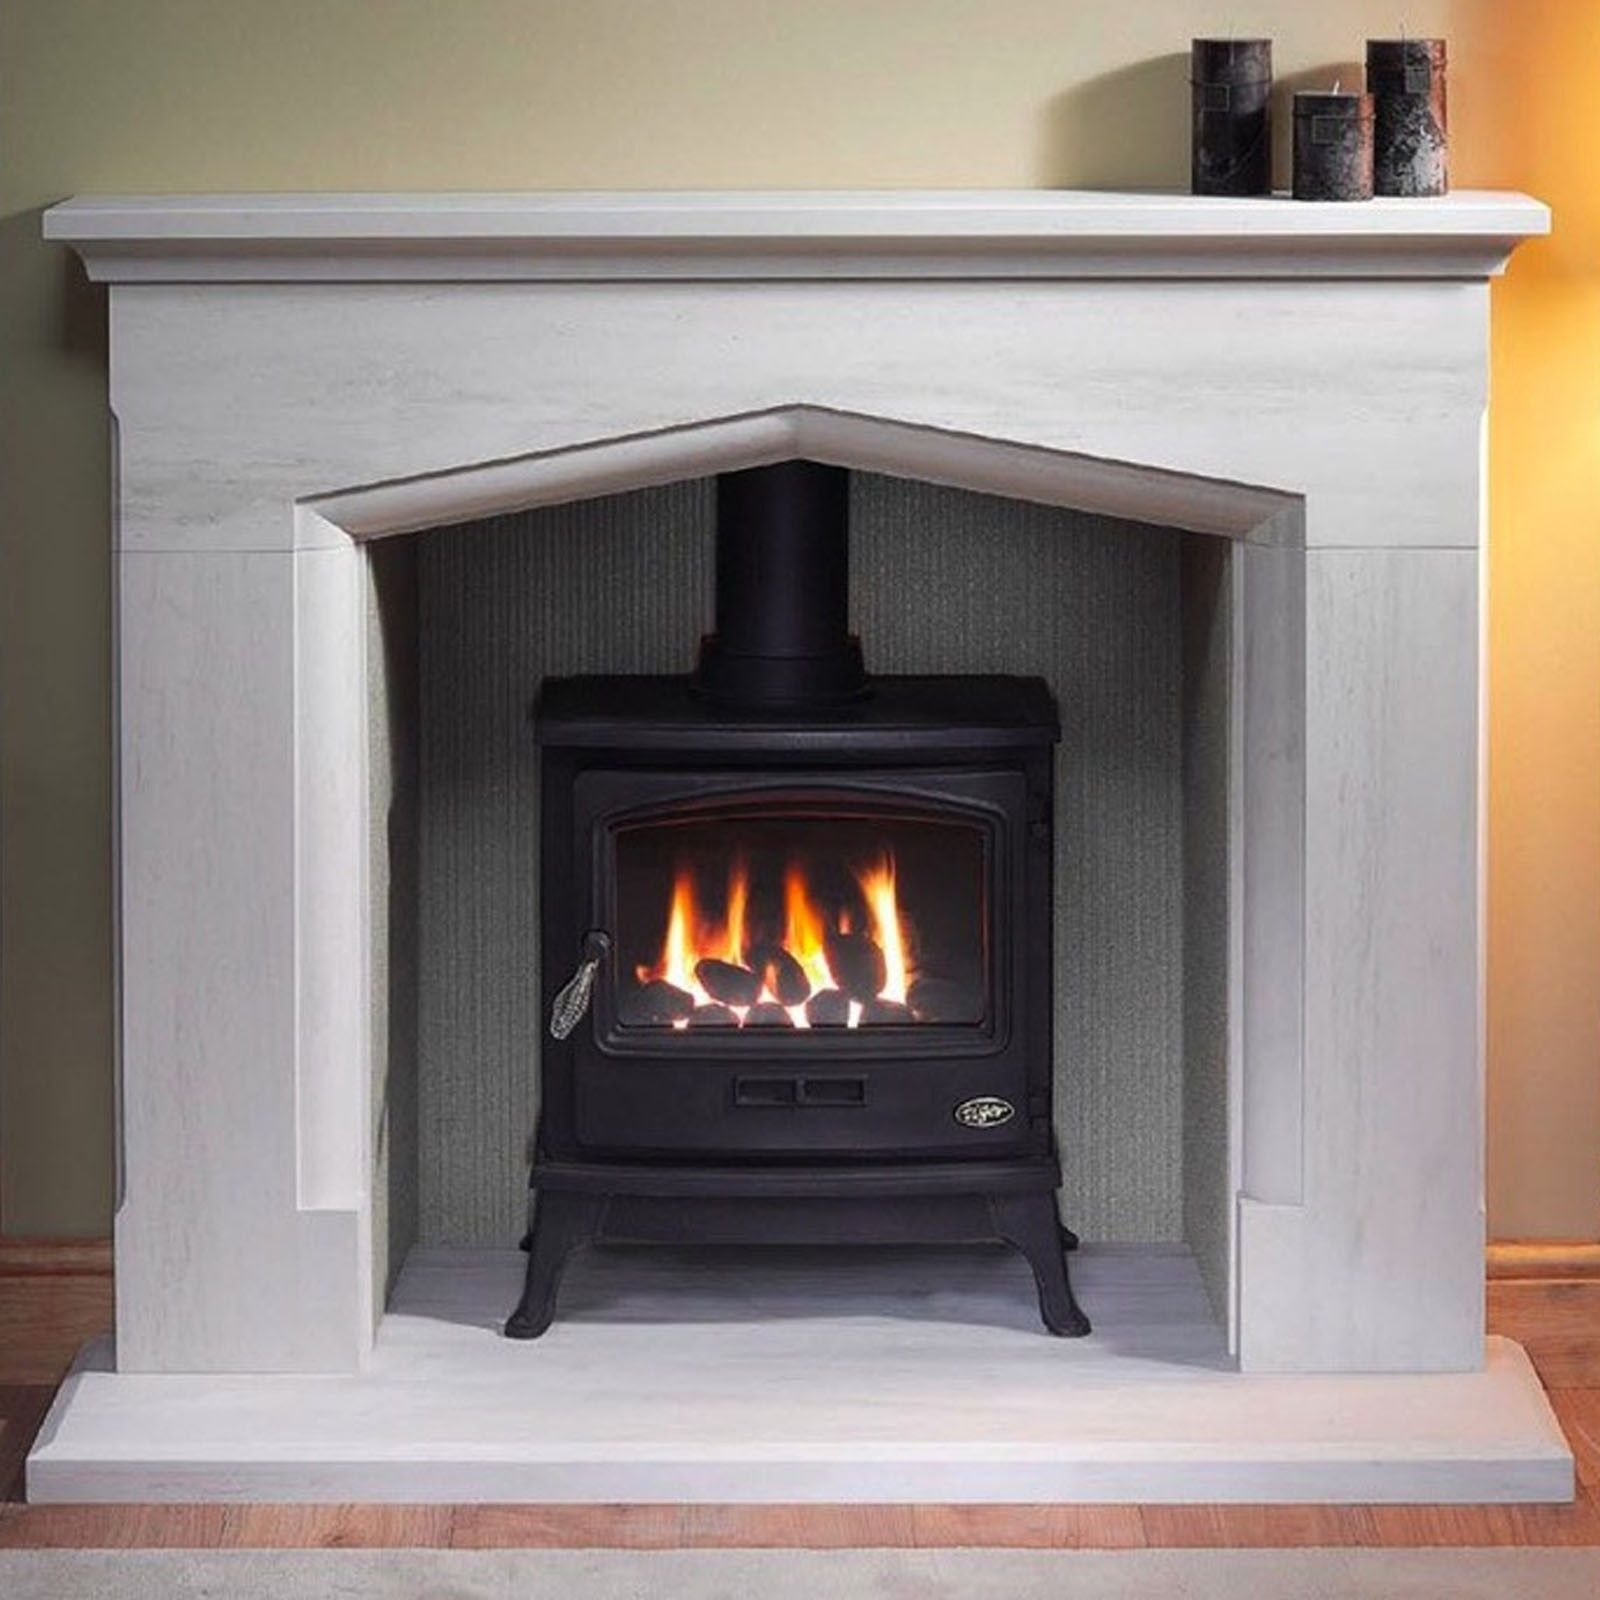 Gallery coniston 54 stone inglenook fireplace in 2020